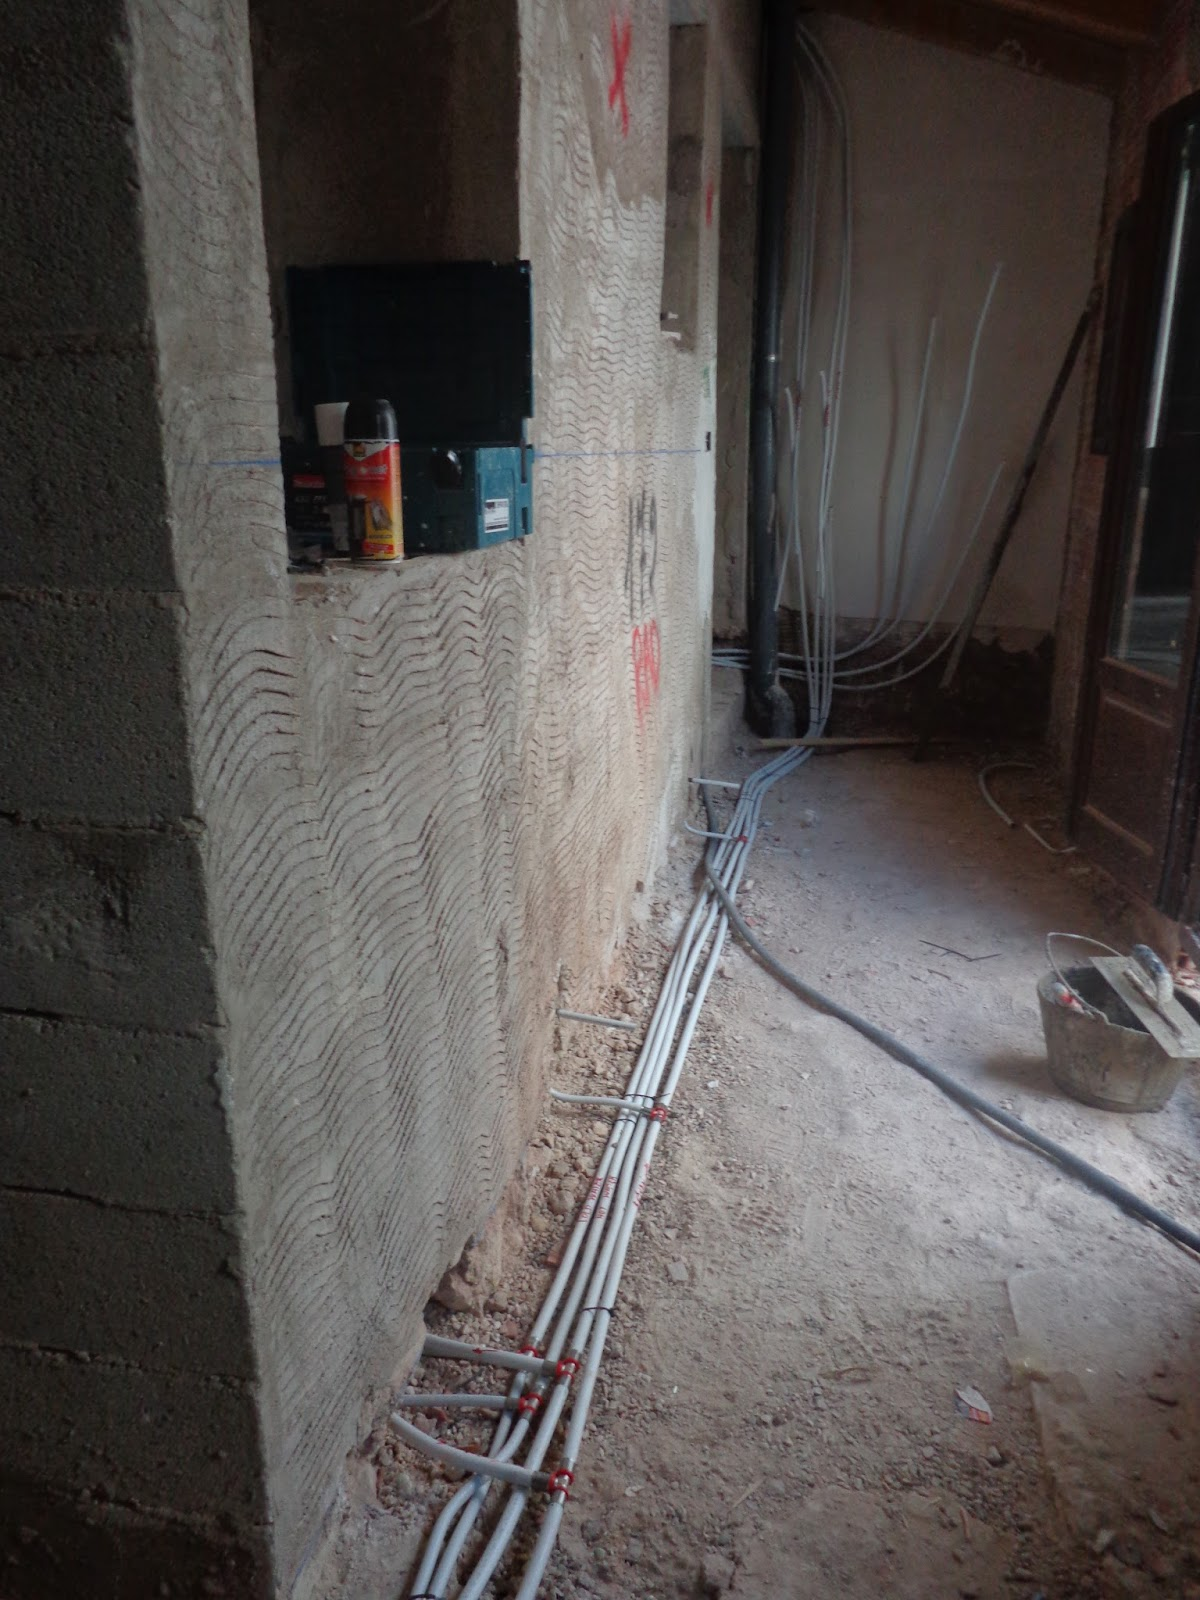 Week 4 Lots Of Progess The Spanish Adventure Begins Electrical Wiring In All Pipes Are Now For Water Waste And Air Conditioning 3 Bathrooms Kitchen Central Heating System Also Has